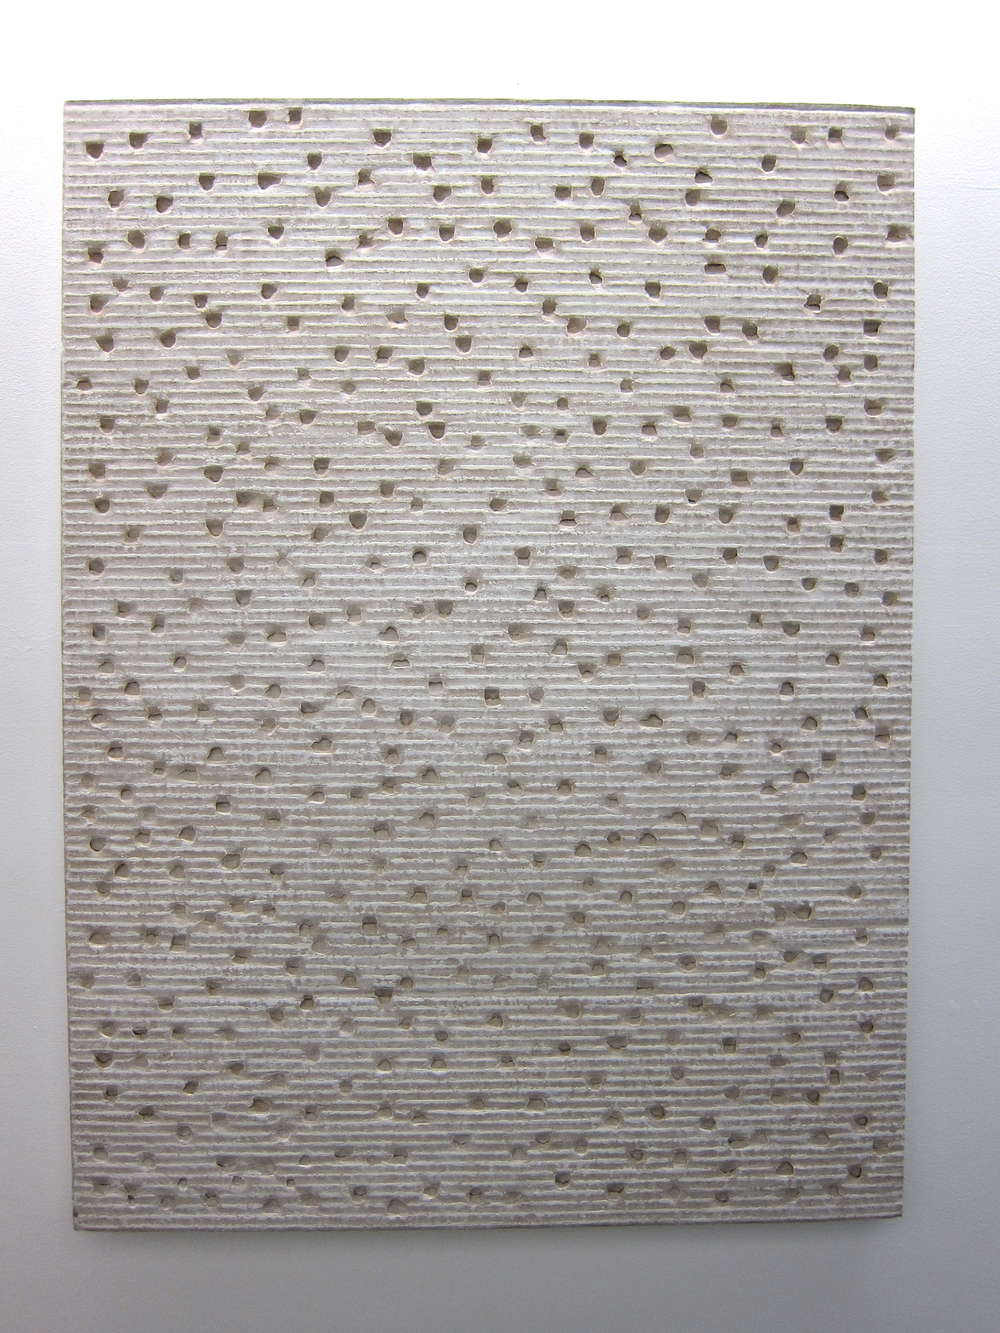 "Tamiko Kawata Vertical Sound Cardboard and acrylic 39"" x 40"""